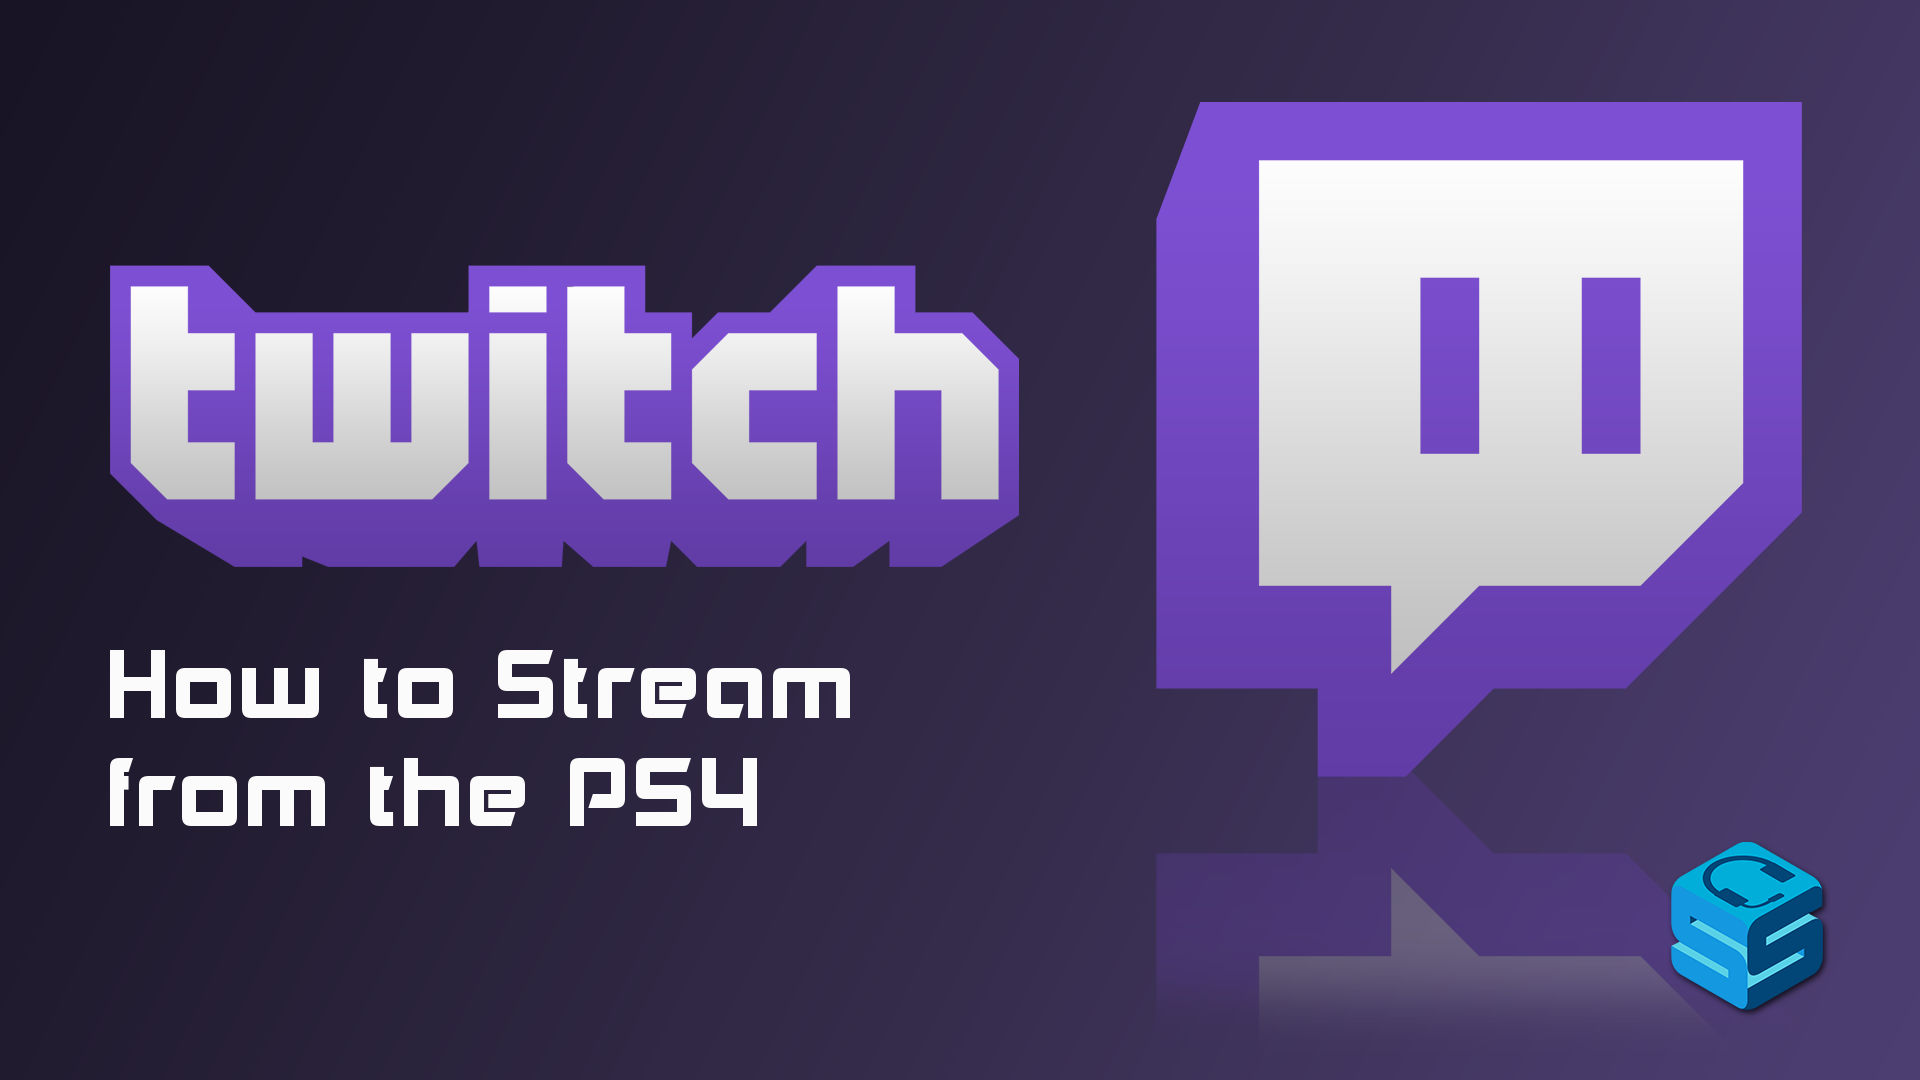 How to Stream on Twitch from PS4